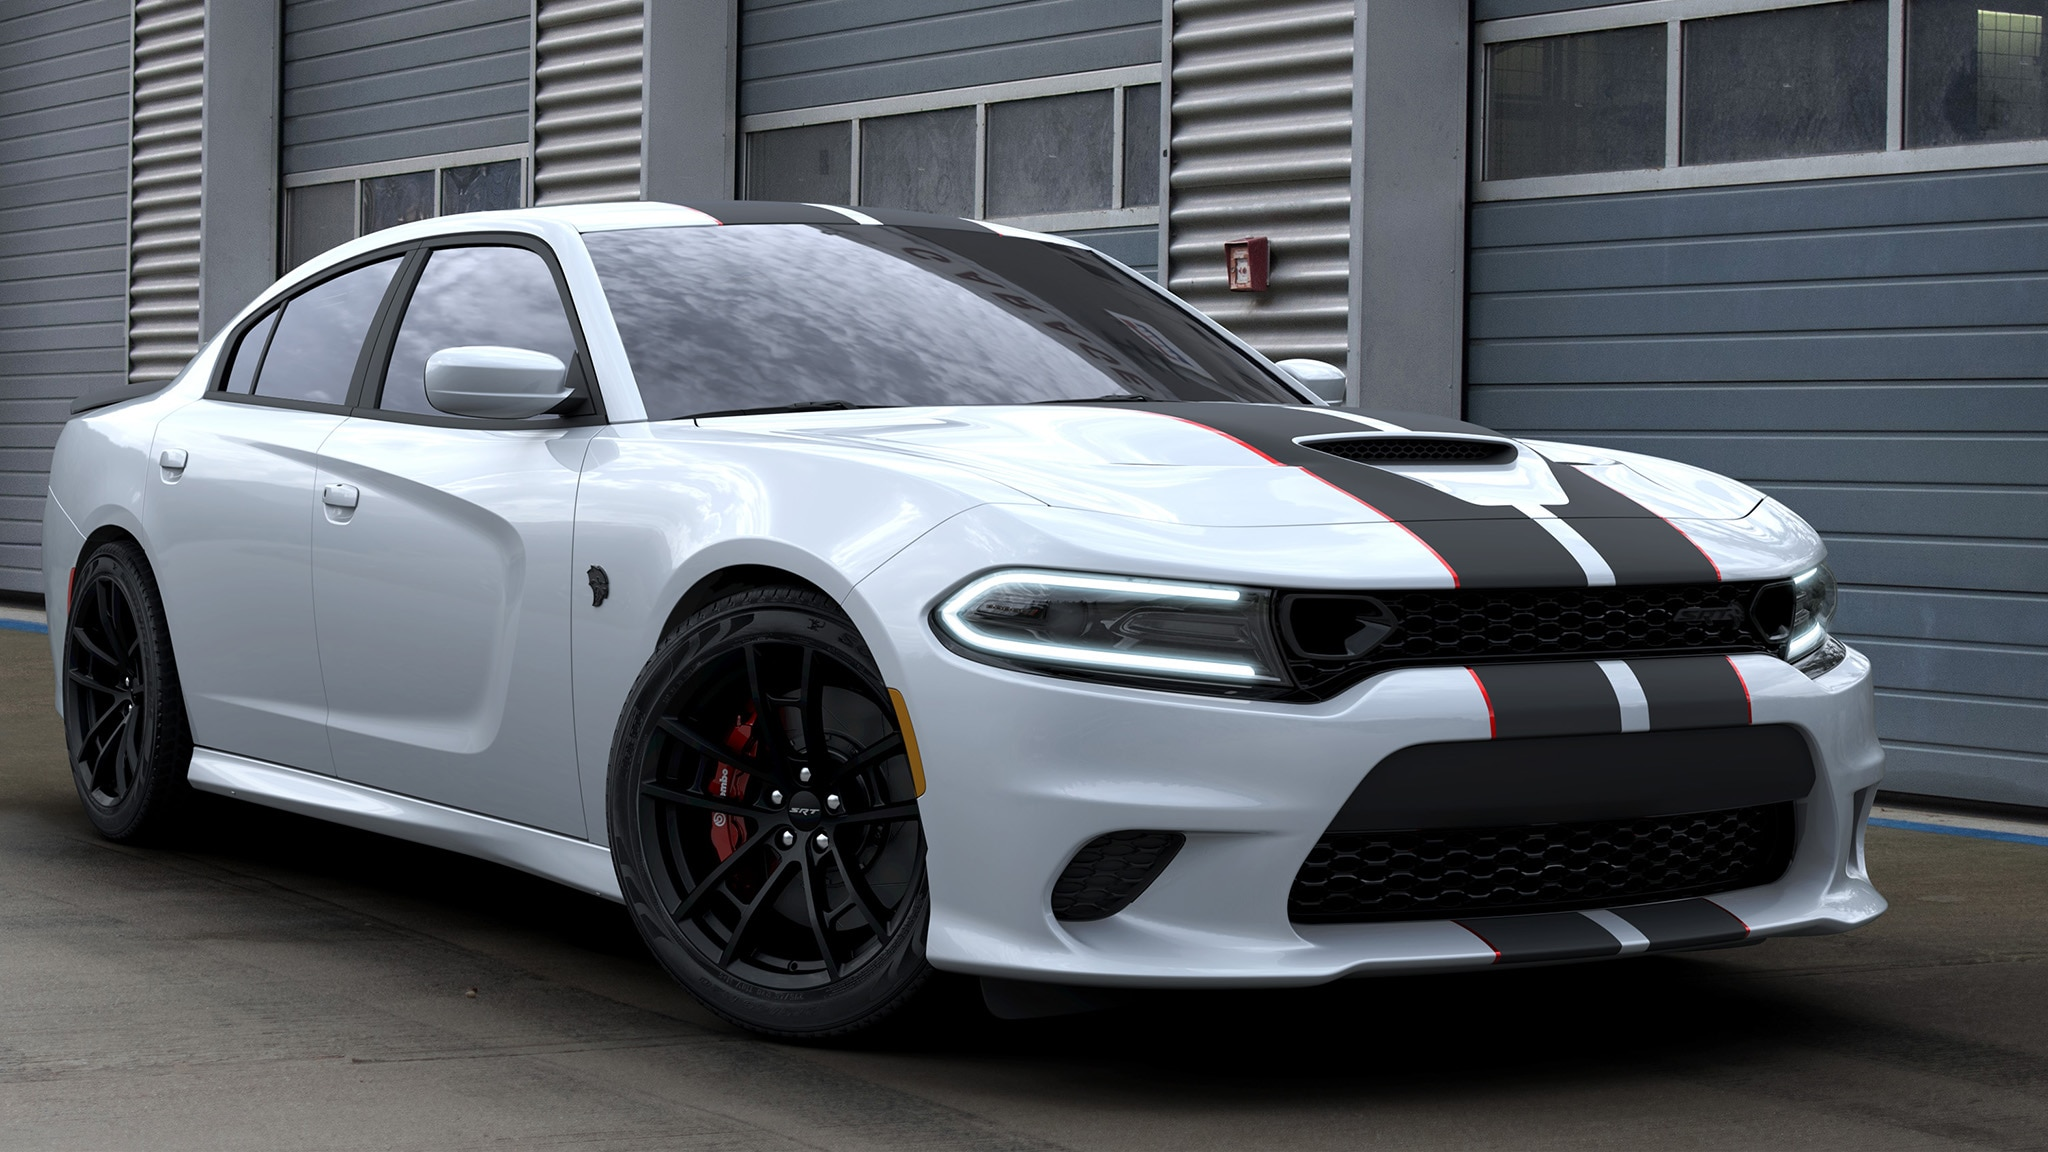 The Dodge Charger Hellcat Octane Edition Is A Blacked Out